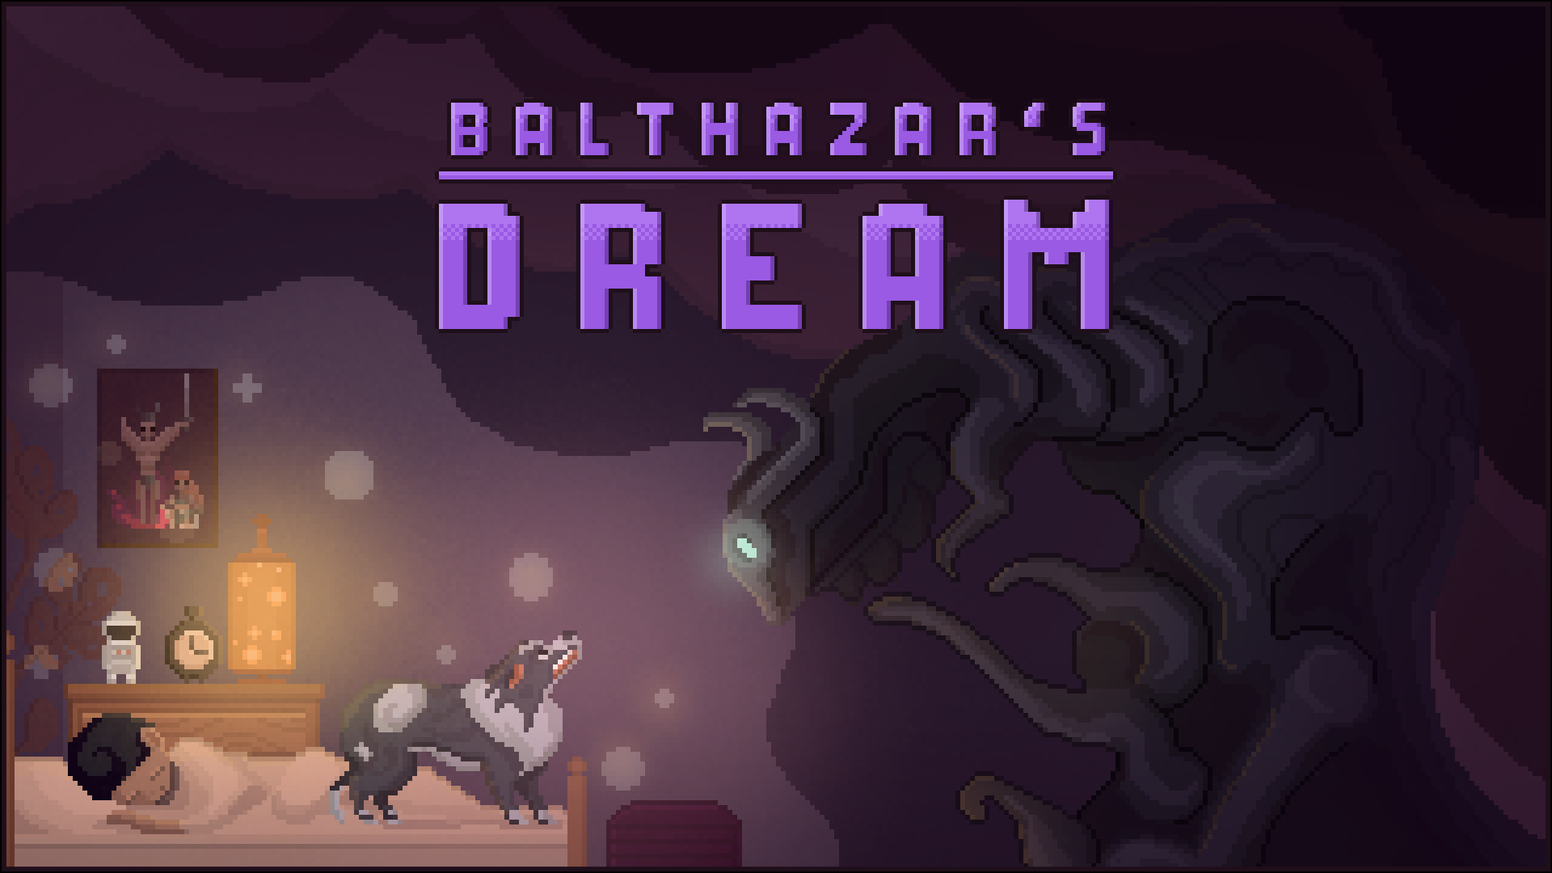 Visit a wonderfully peculiar dog's dream in a heroic attempt to save your owner in this beautiful pixel art puzzle platformer.